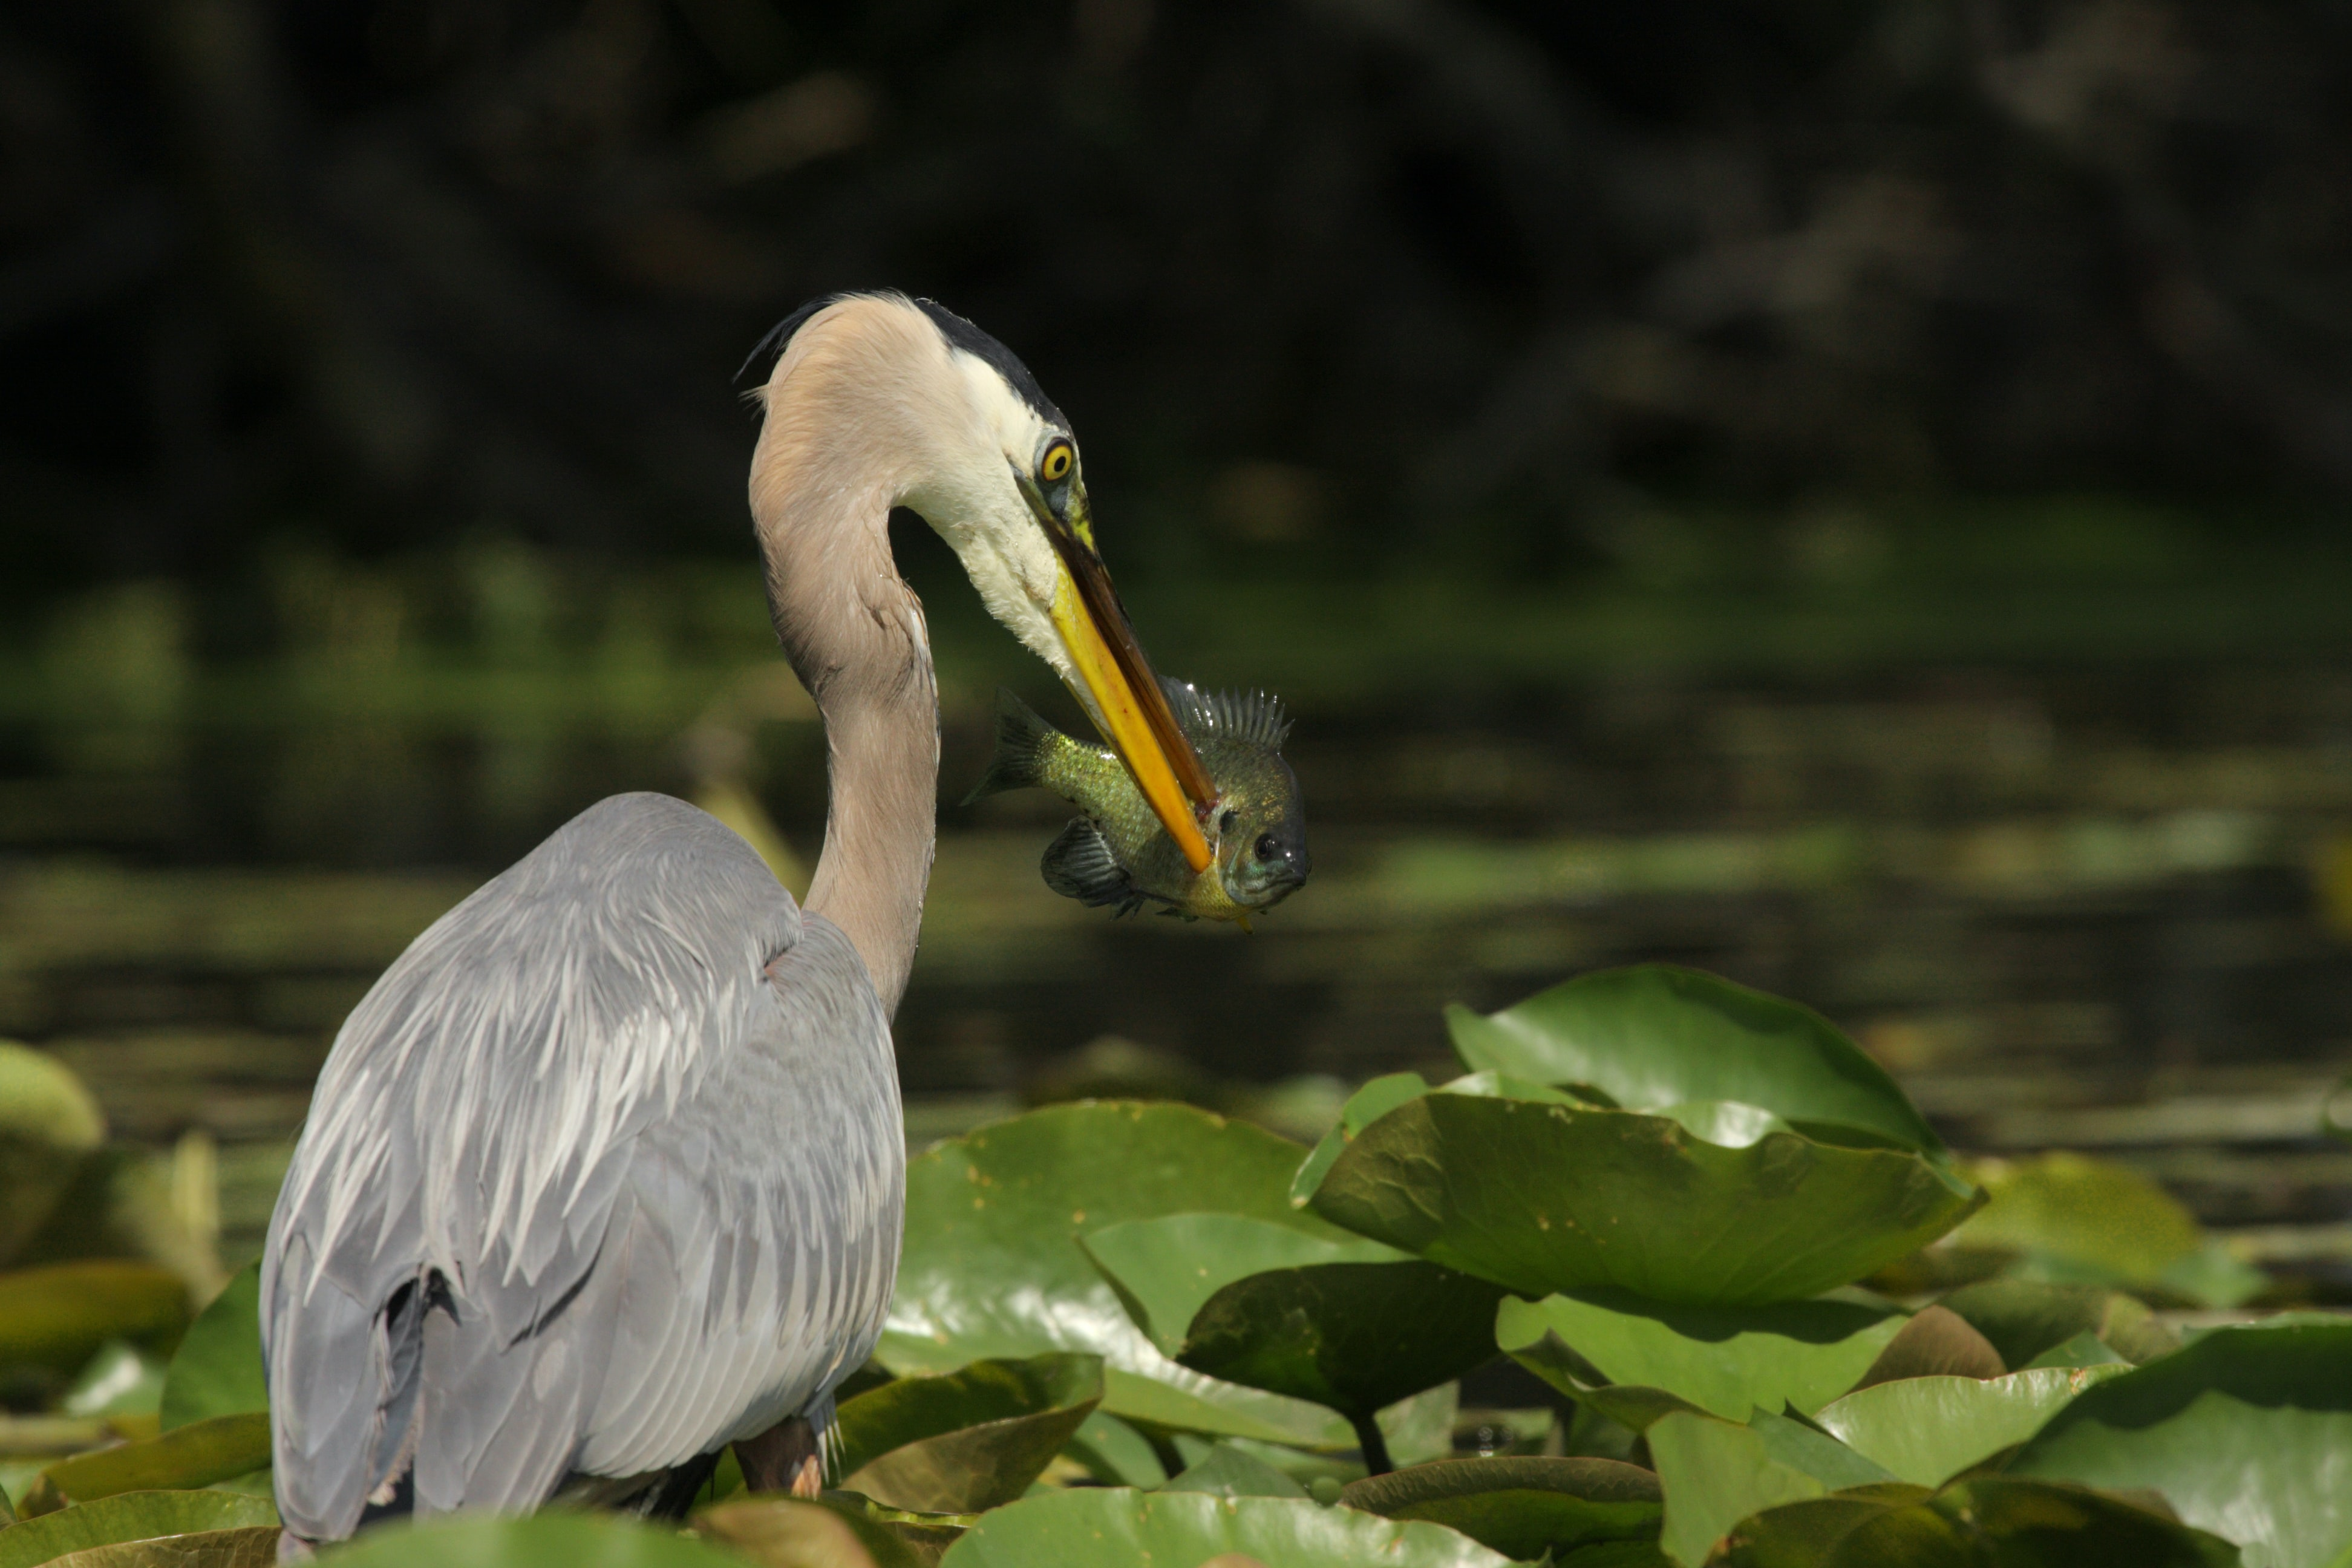 Pelican in a leafy pond catches fresh fish to eat